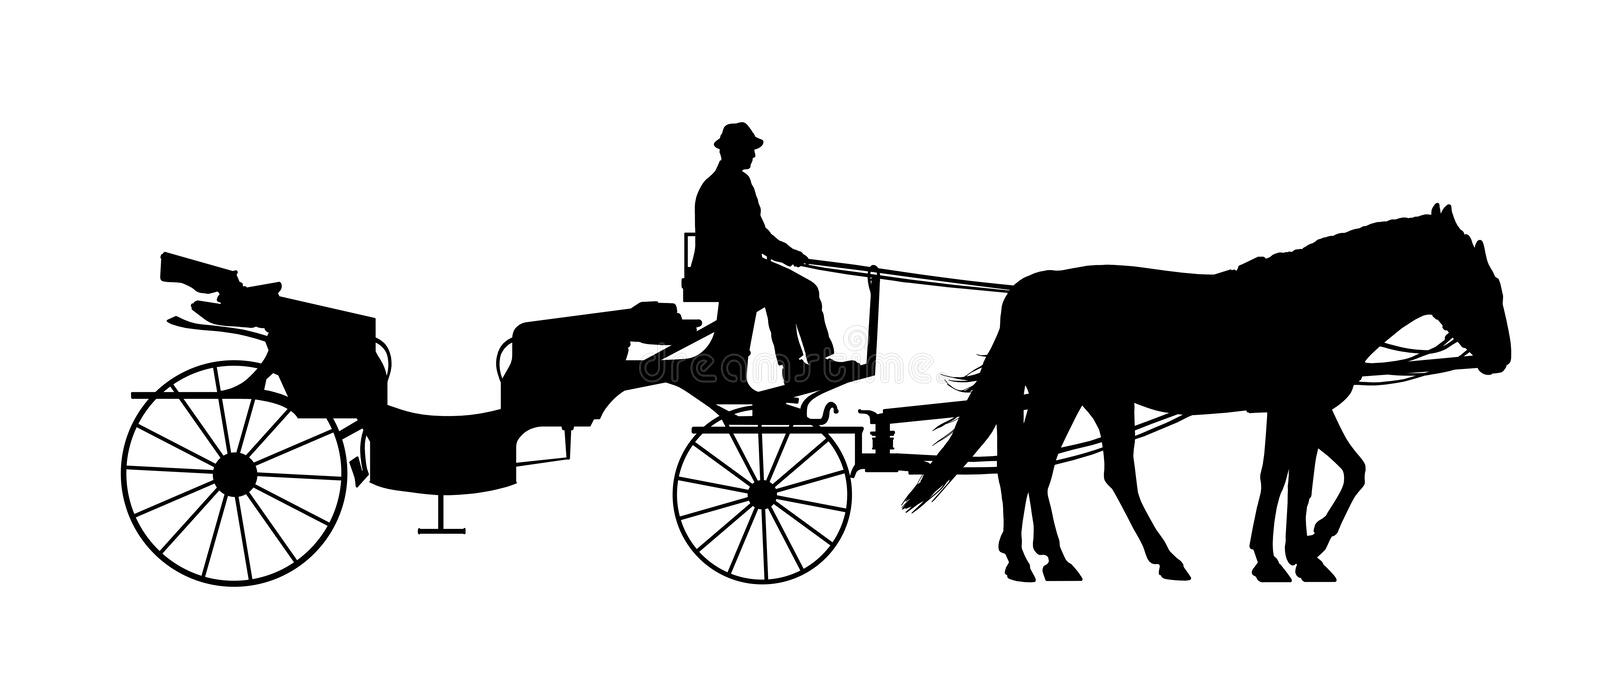 Old Style Carriage With A Coachman Silhouette Stock